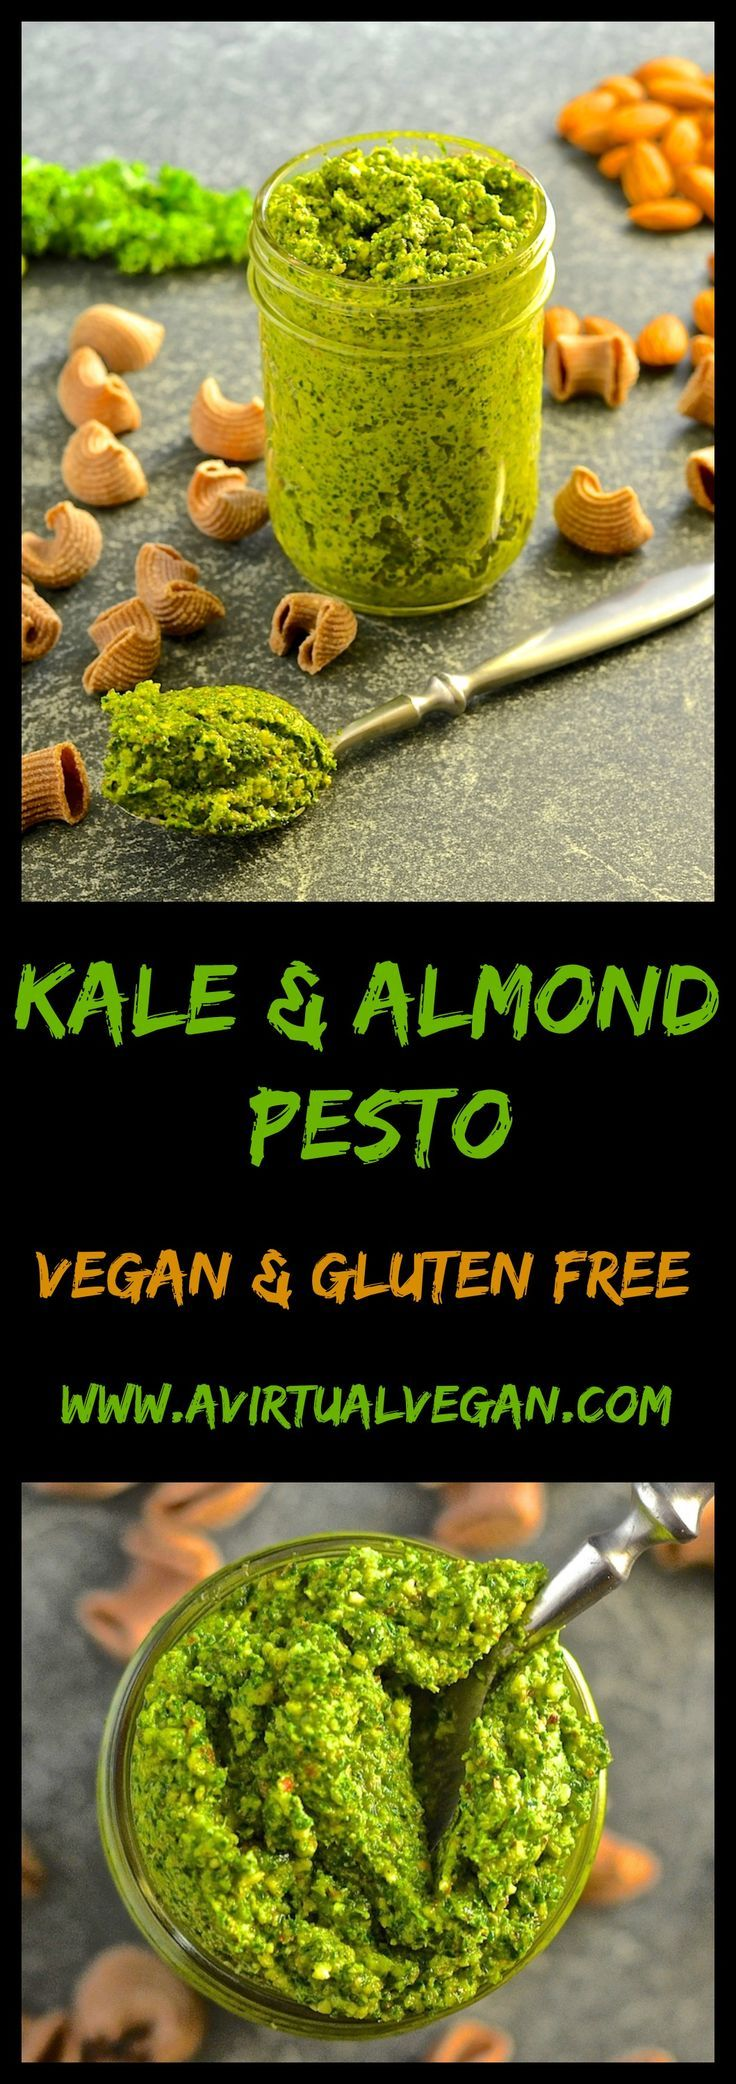 Veganes Pesto ganz einfach selber machen - mit Grünkohl & Mandeln *** This Kale & Almond Pesto makes a wonderful alternative to traditional basil pesto plus it's cheaper to make & it's dairy free. Stir through freshly cooked pasta for a super fast & nutritious meal!